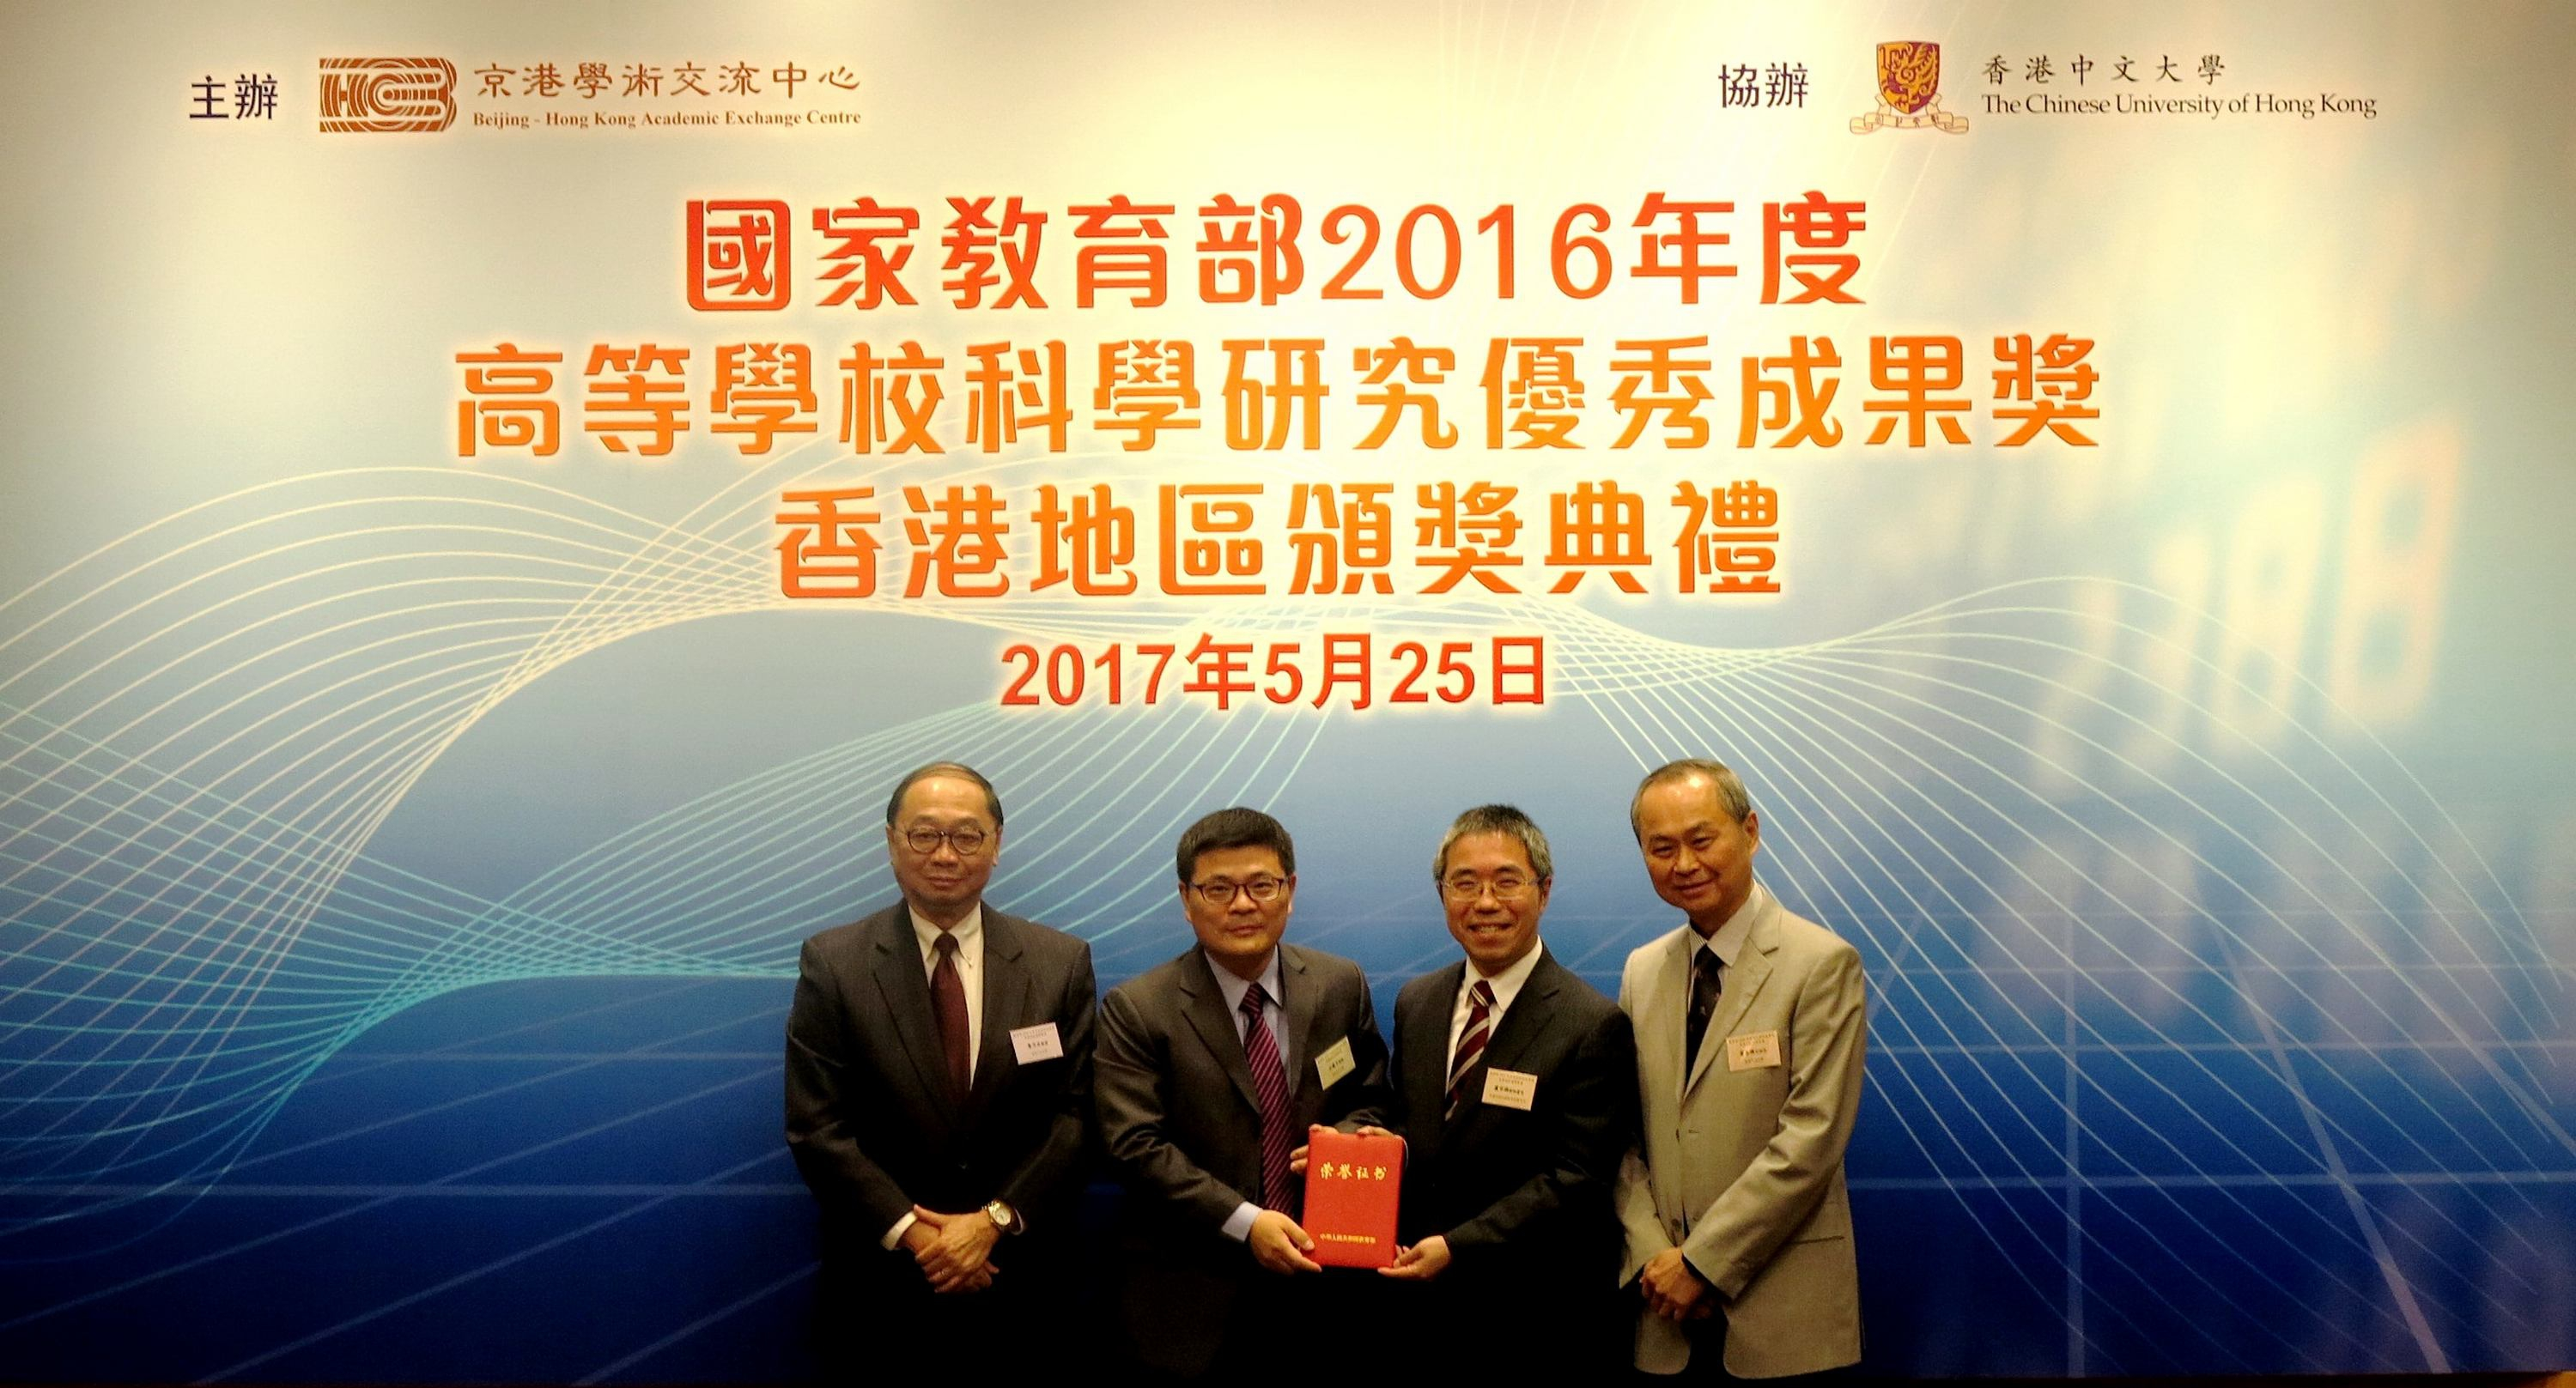 Prof. Wang Jianfang (2nd left), accompanied by Prof. Fok Tai-Fai (right) and Prof. Henry Wong (left), receives the award certificate from Mr. Brian Lo, Deputy Secretary for Education, HKSAR Government (2nd right)。